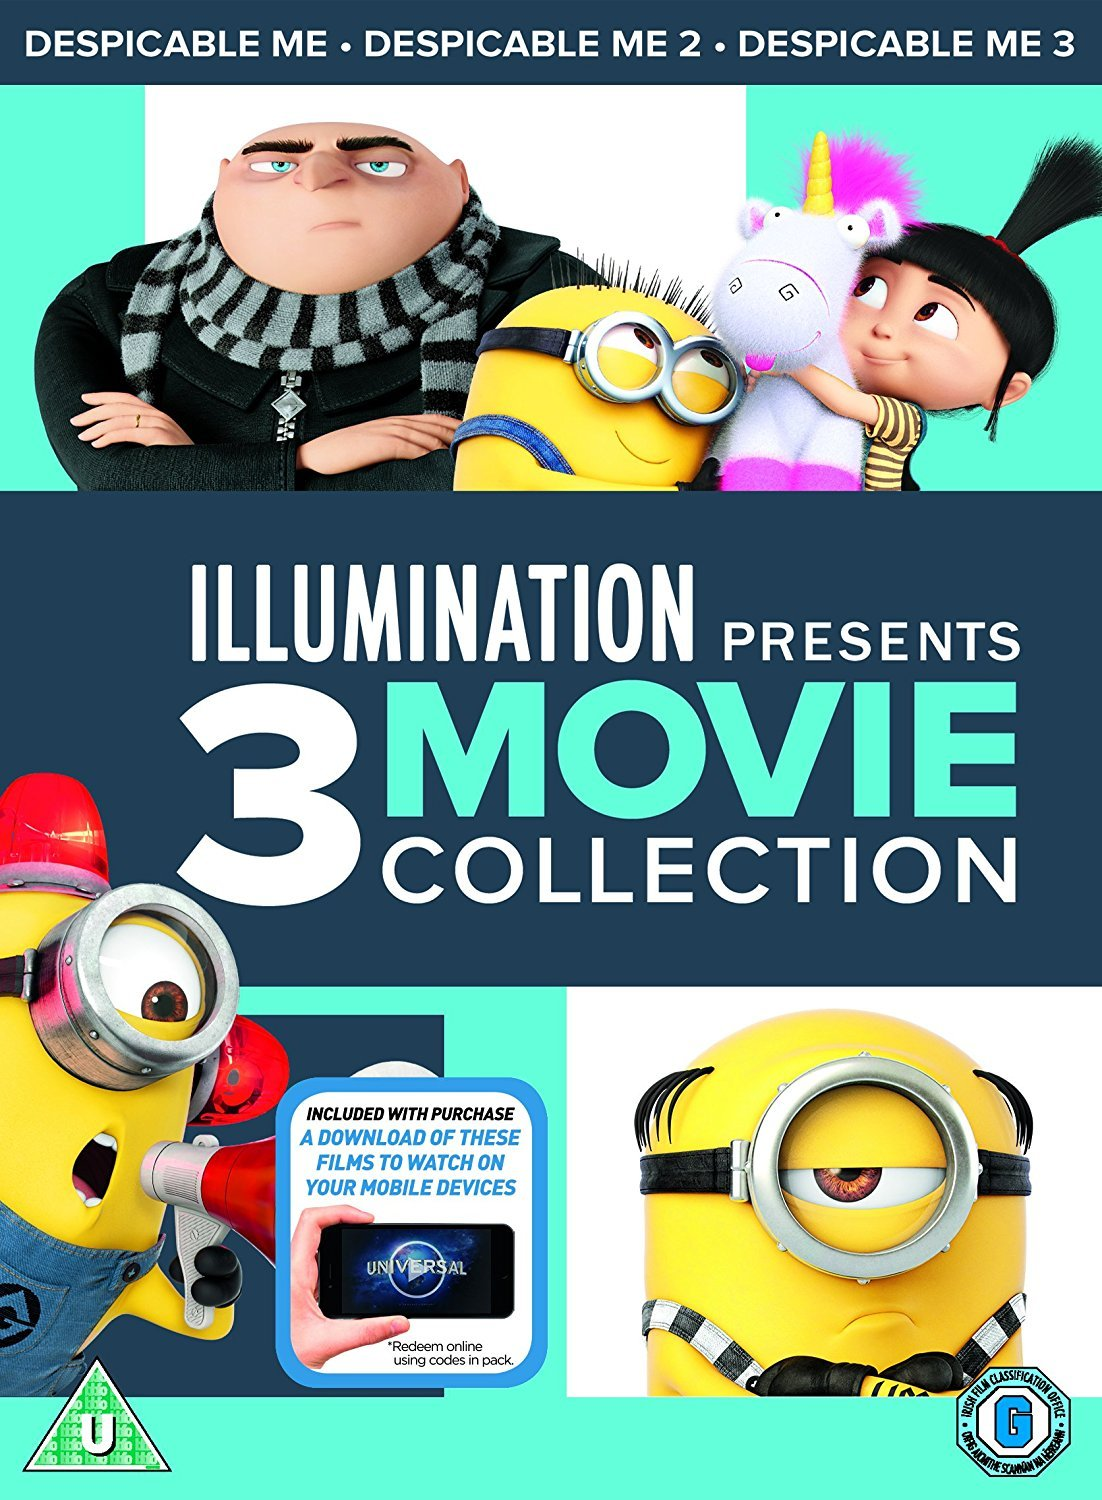 Despicable me 2 signing you up for online dating